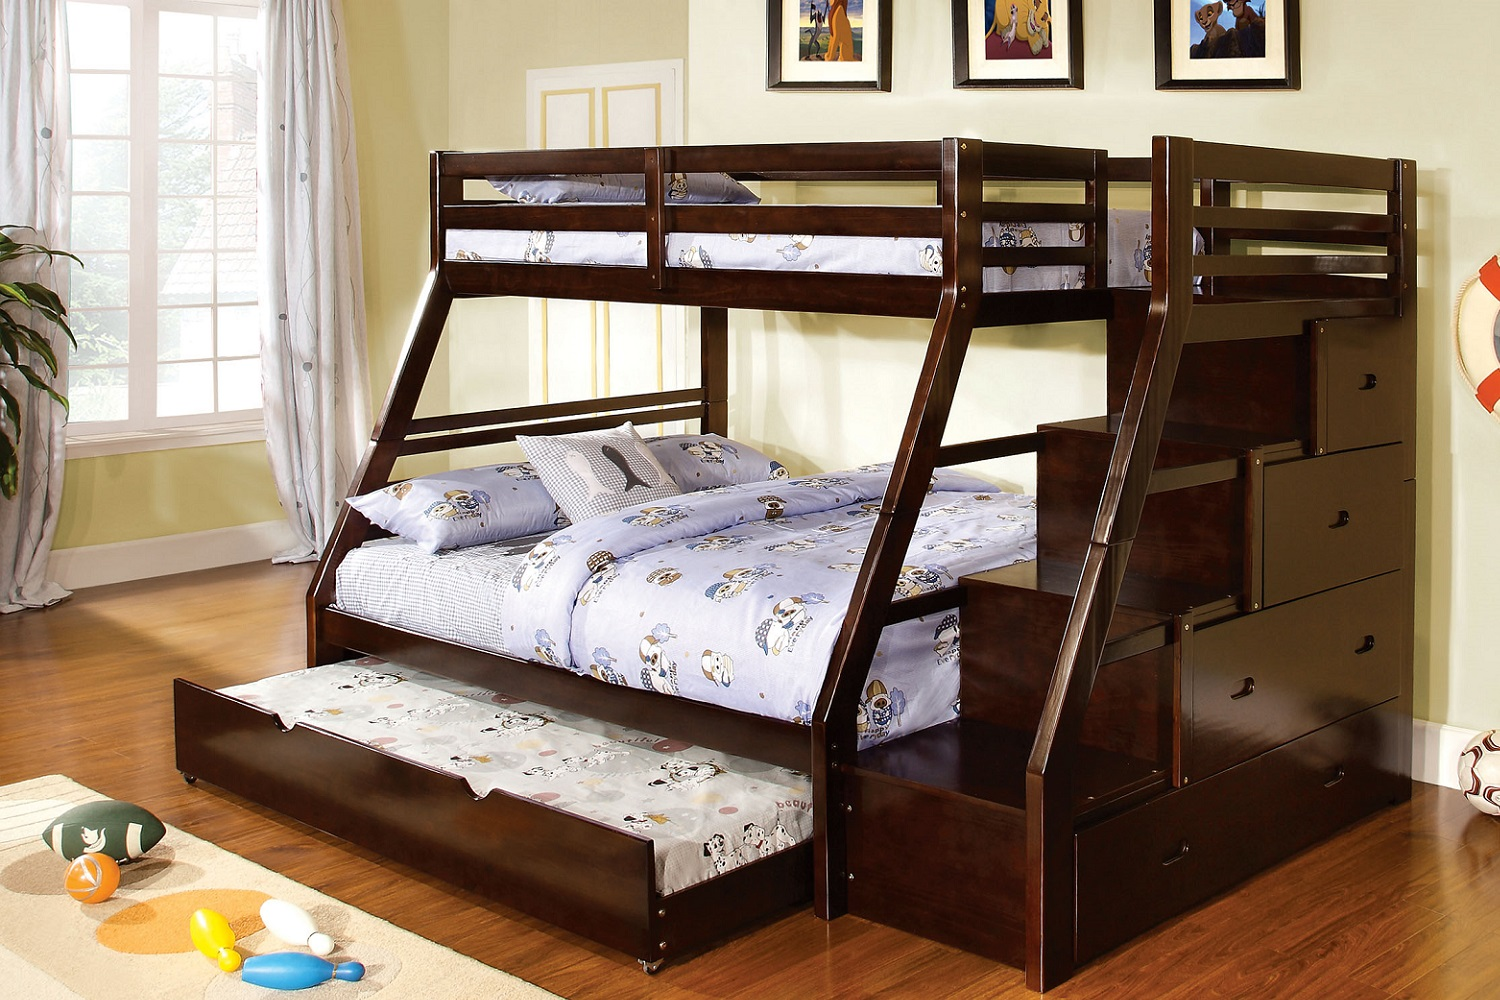 loft tierra beds bedroom este adults stunning for cool ideas bed